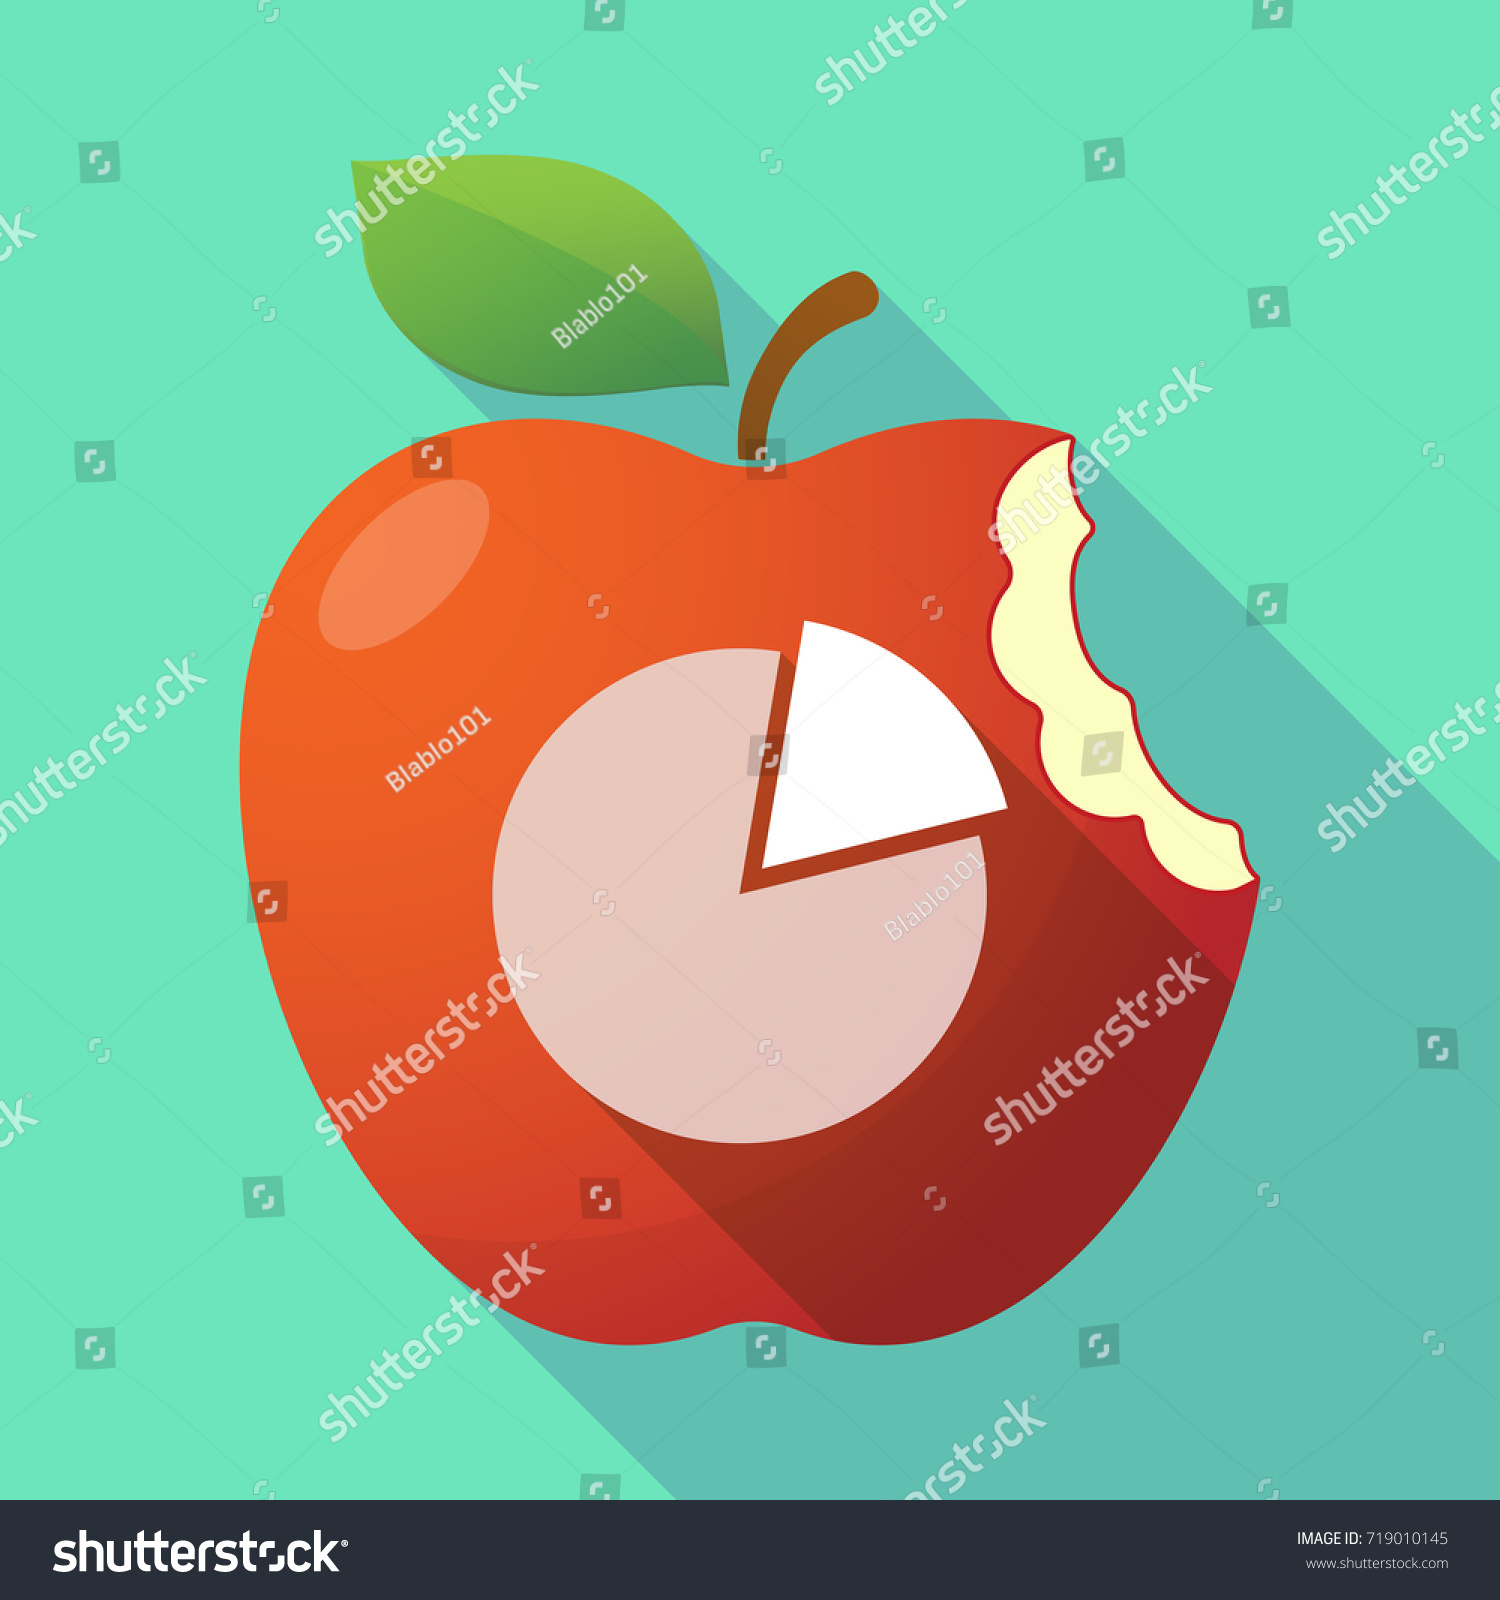 Illustration long shadow apple fruit pie stock vector 719010145 illustration of a long shadow apple fruit with a pie chart nvjuhfo Images